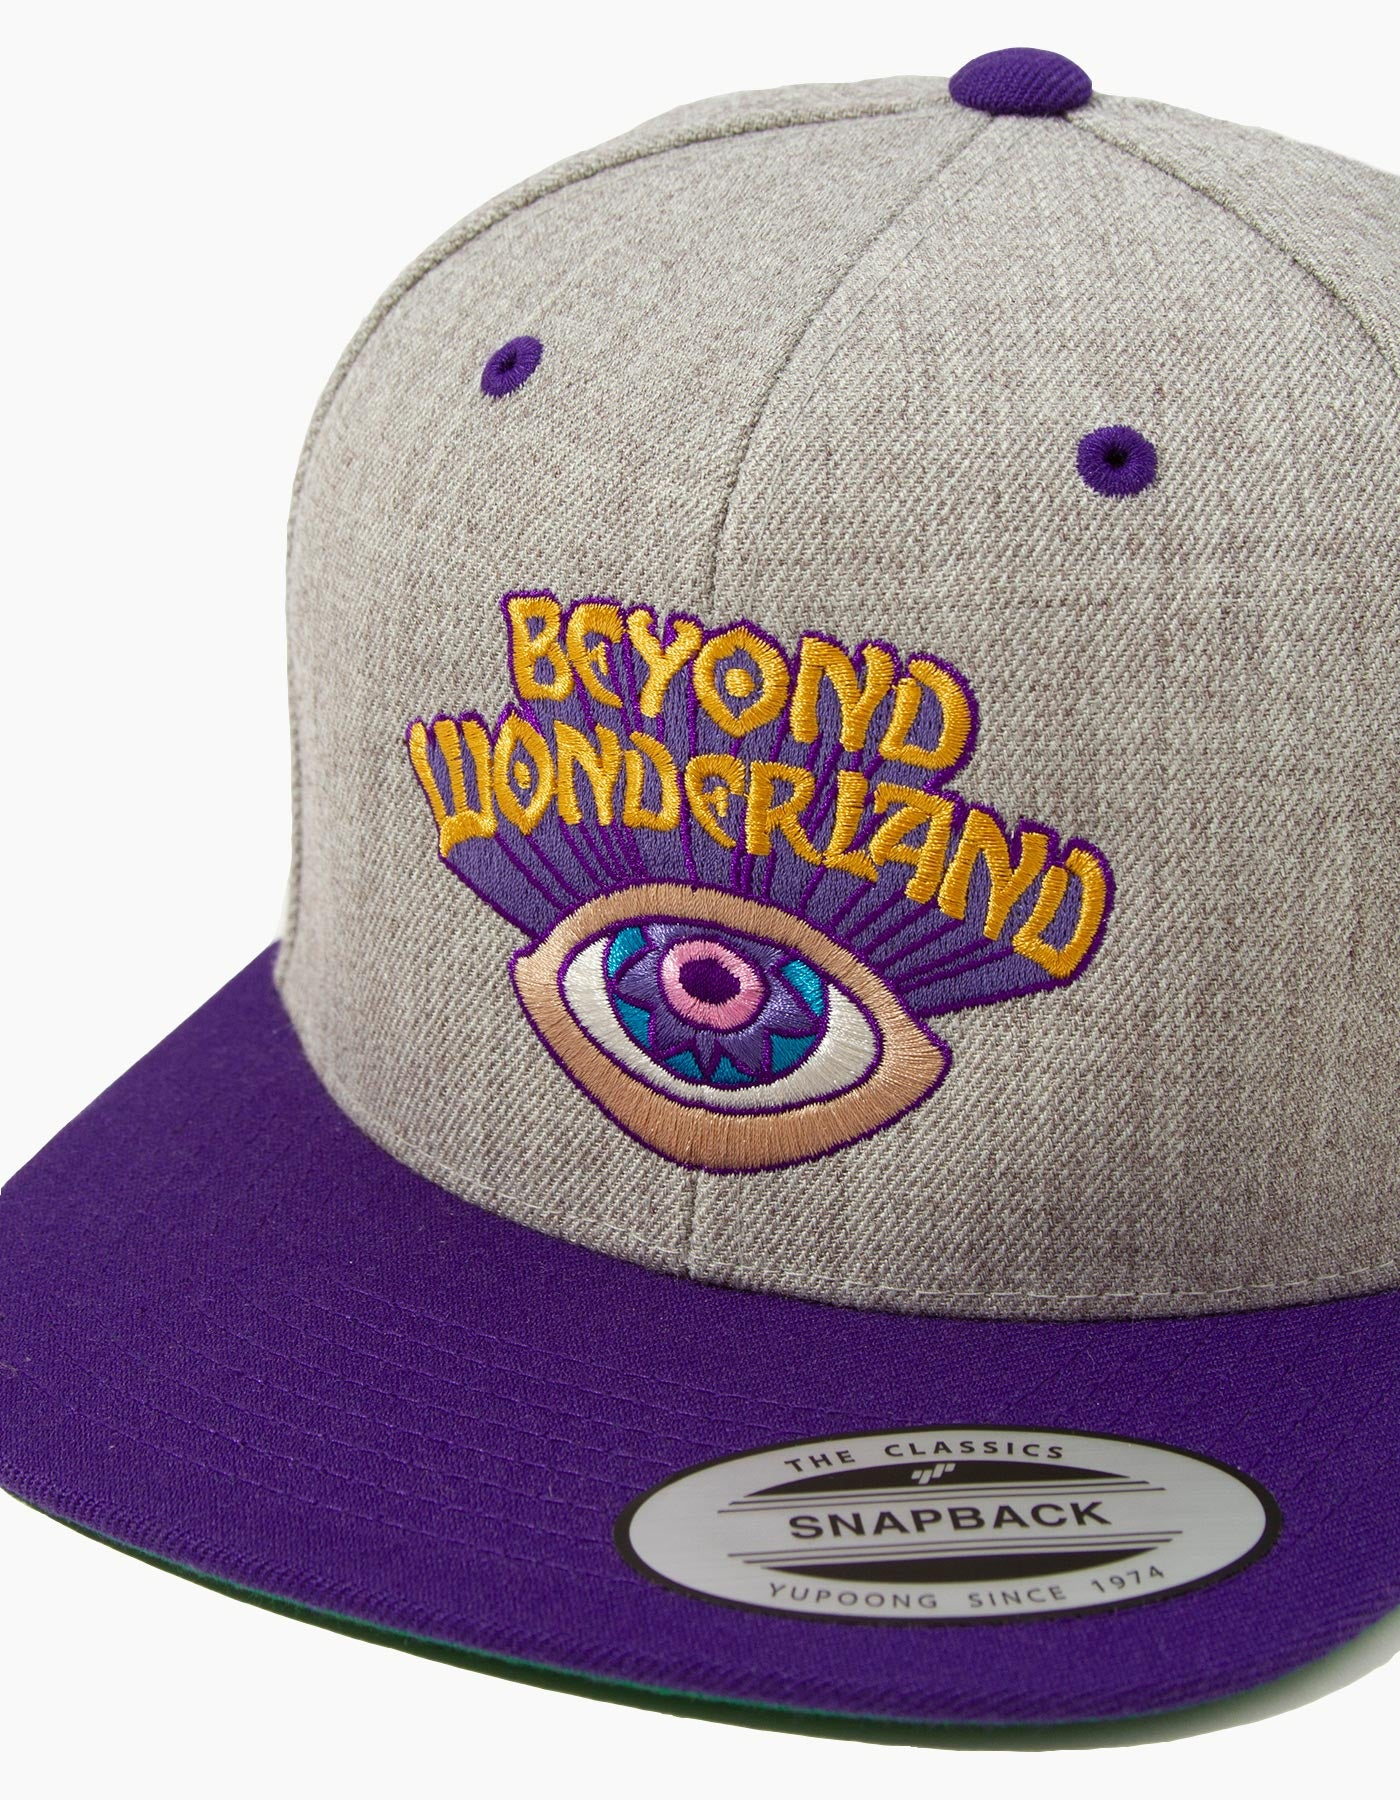 Beyond Wonderland Third Eye Hat